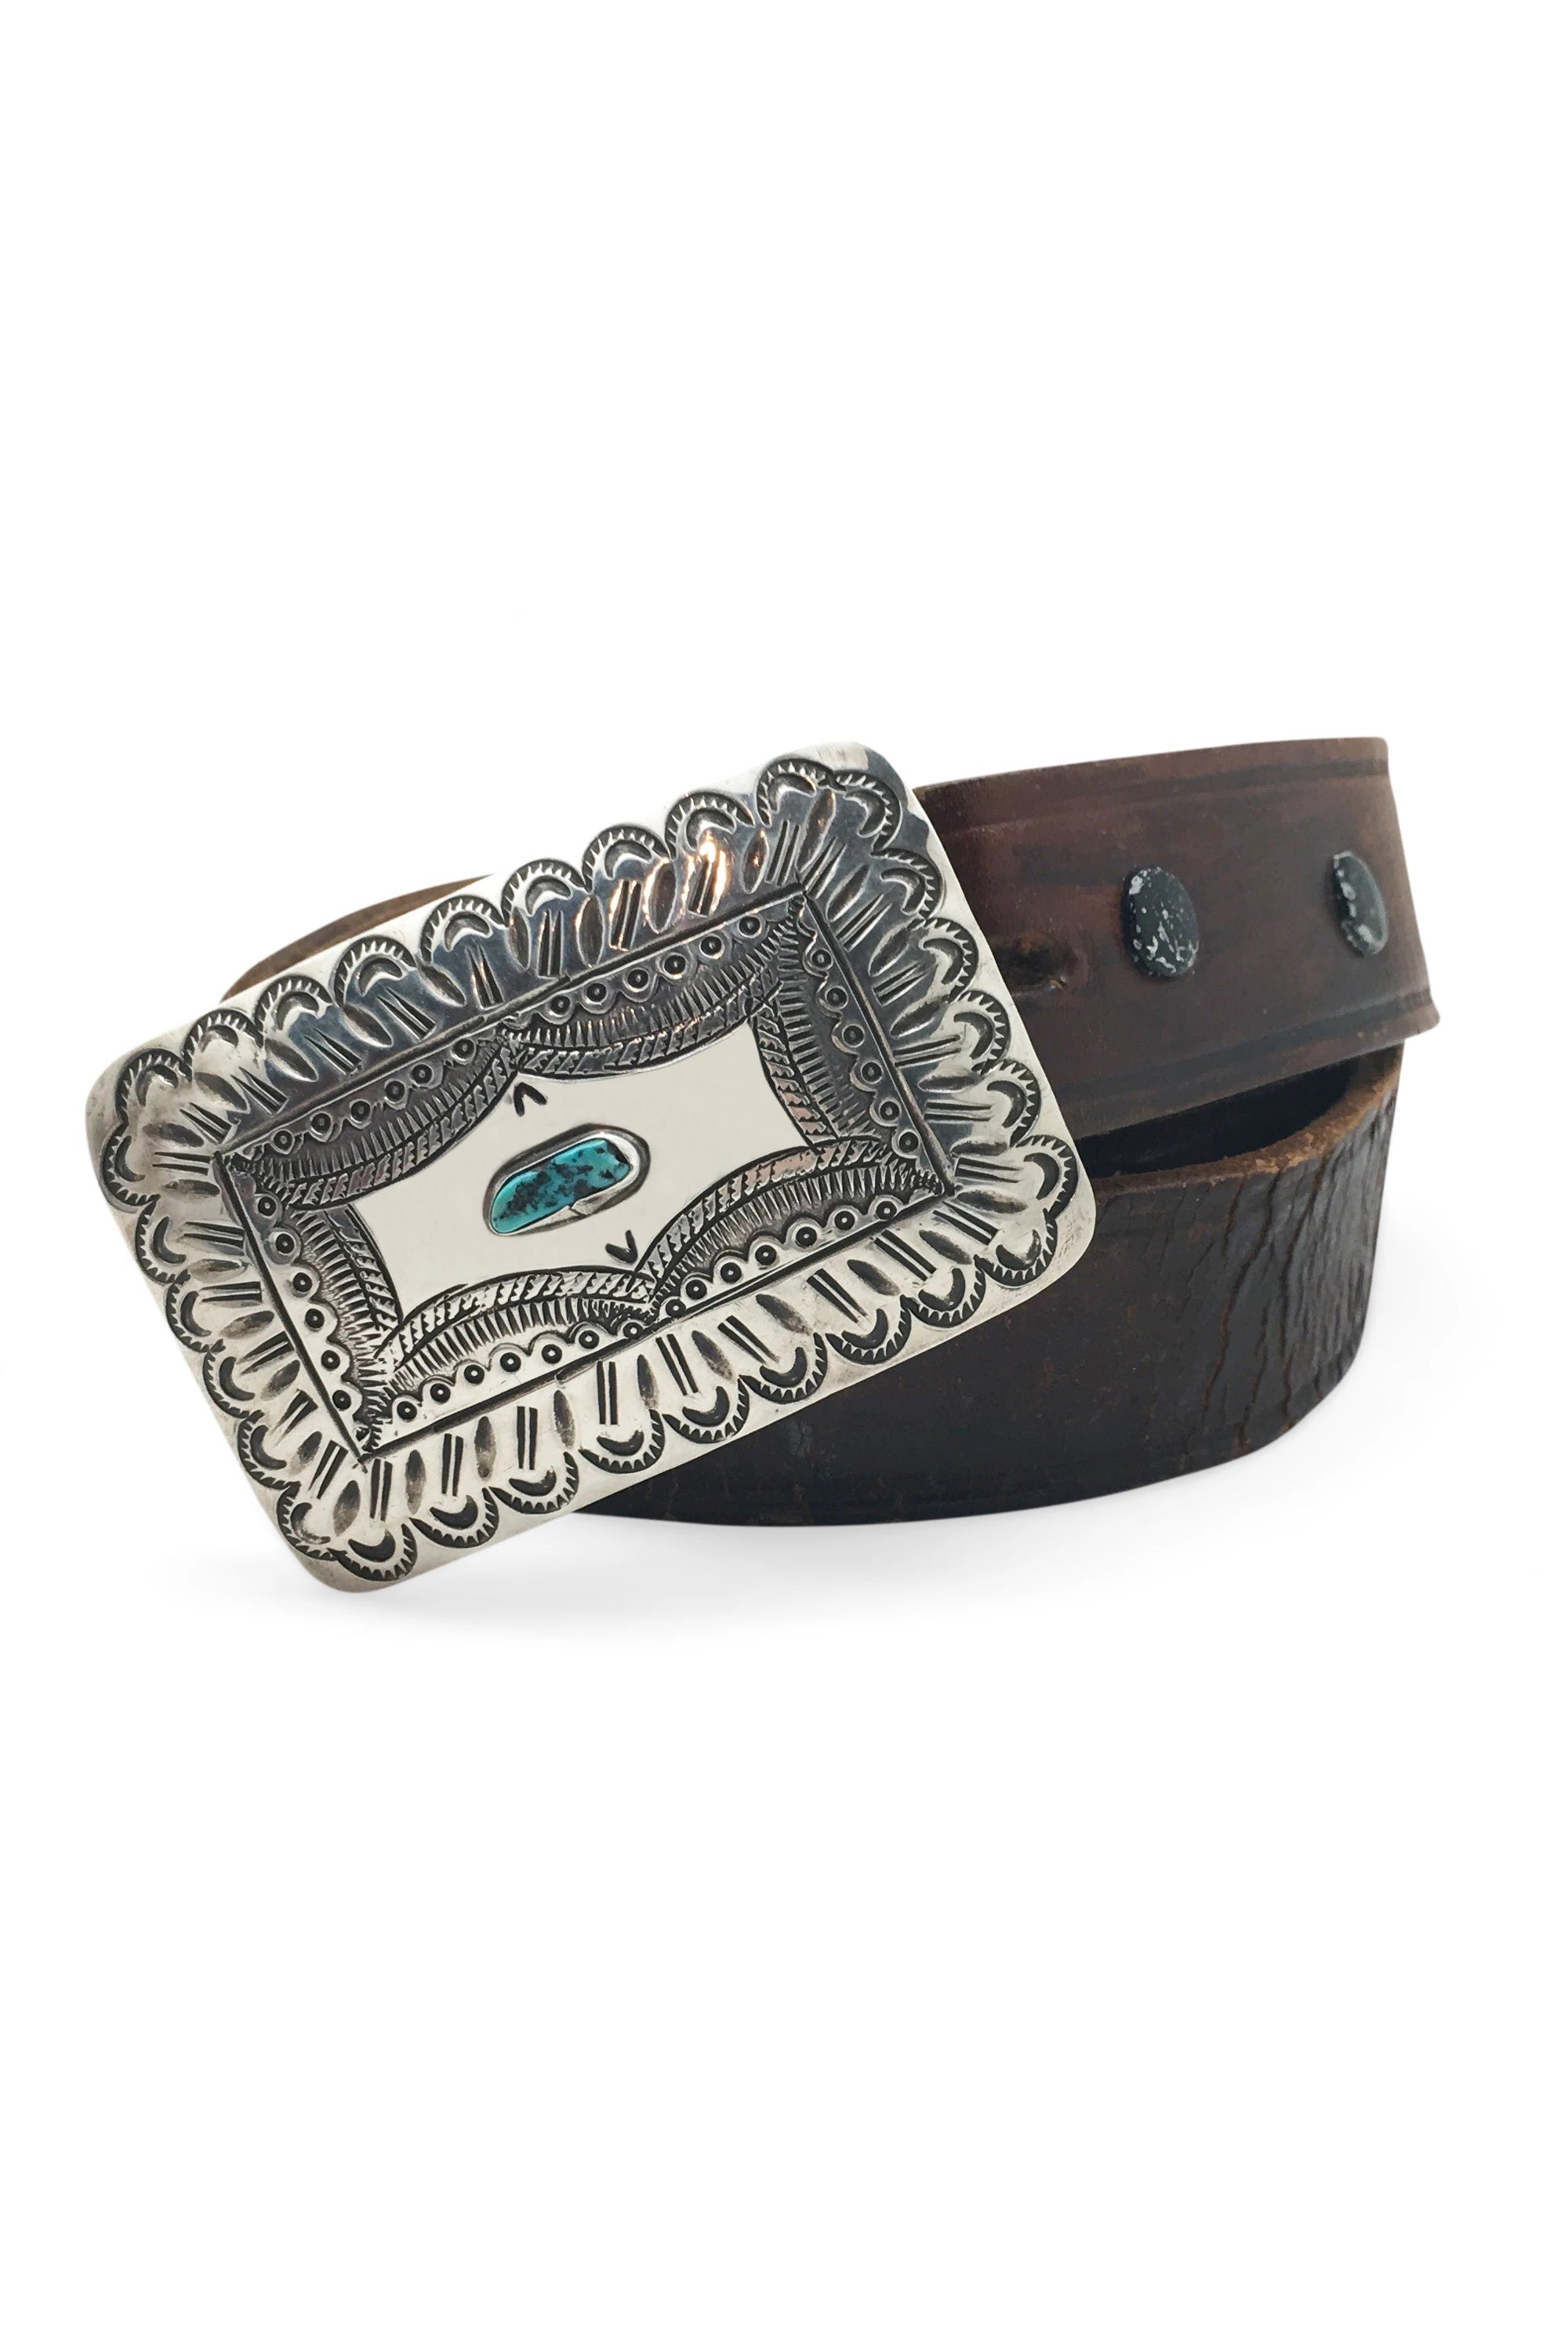 Belt, Concho Buckle, Turquoise & Sterling Silver, Tooled Leather Strap, Hallmark, Vintage, 668